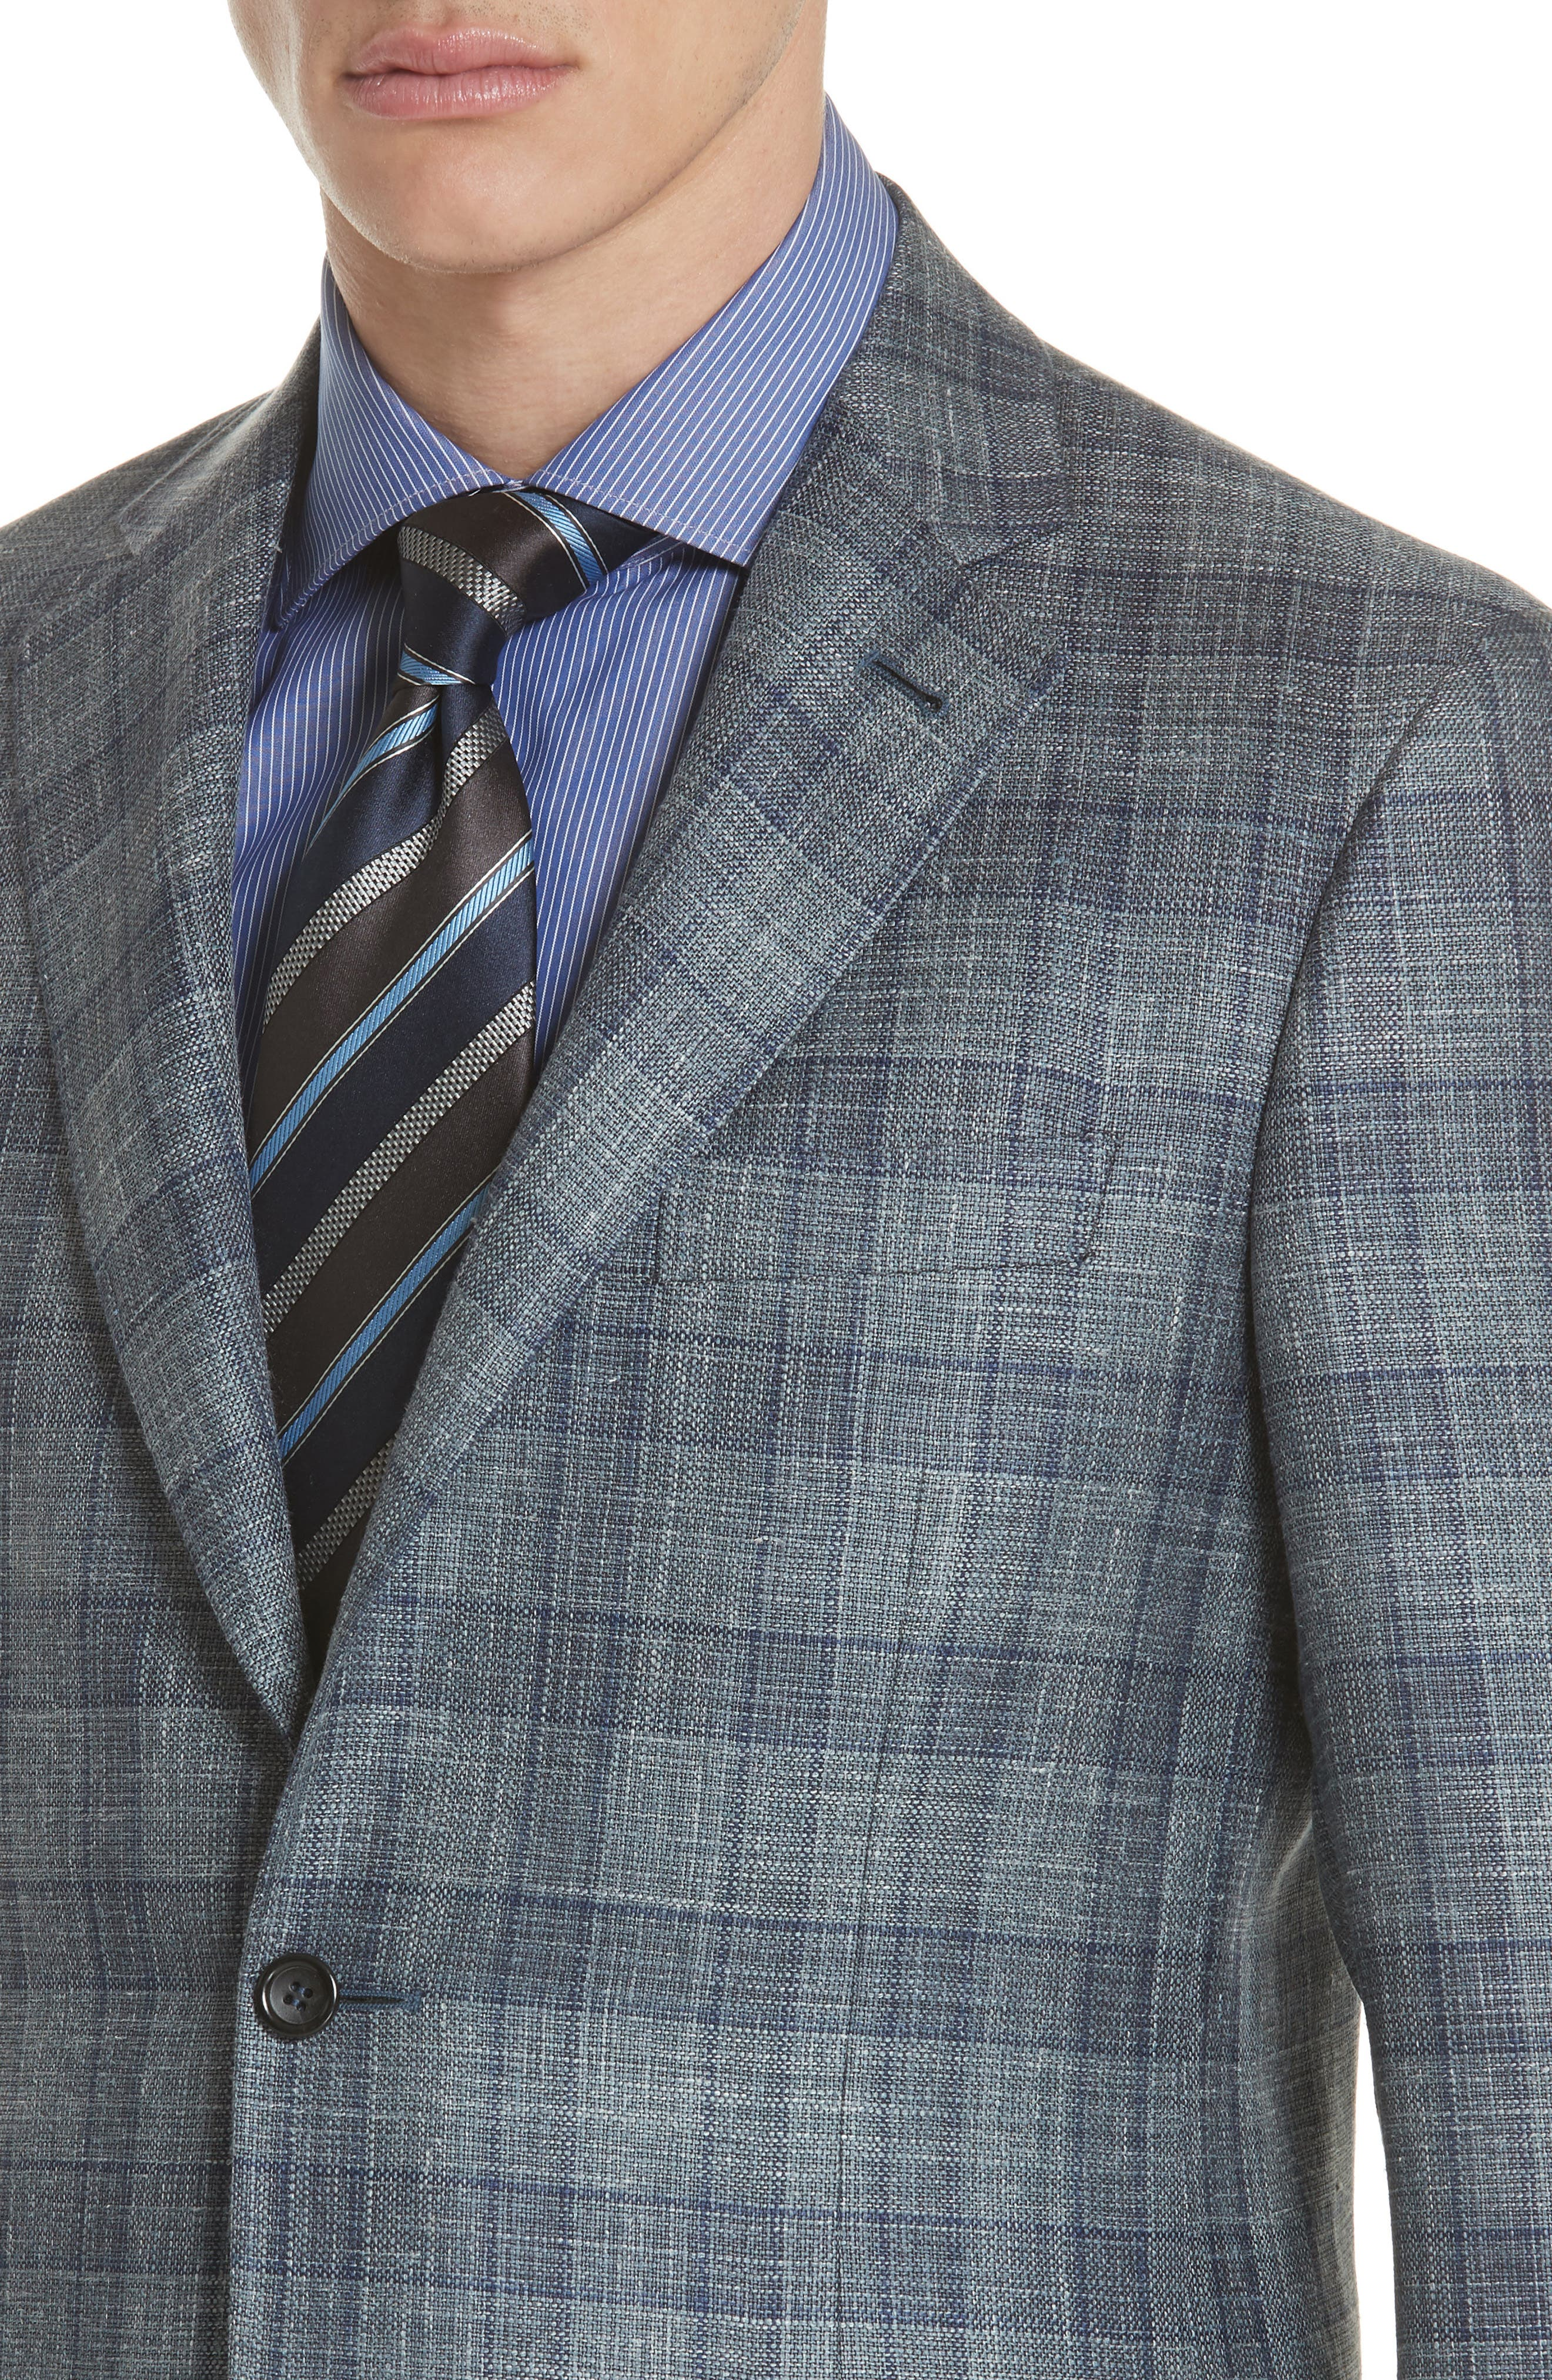 Classic Fit Wool Blend Check Sport Coat,                             Alternate thumbnail 4, color,                             Grey